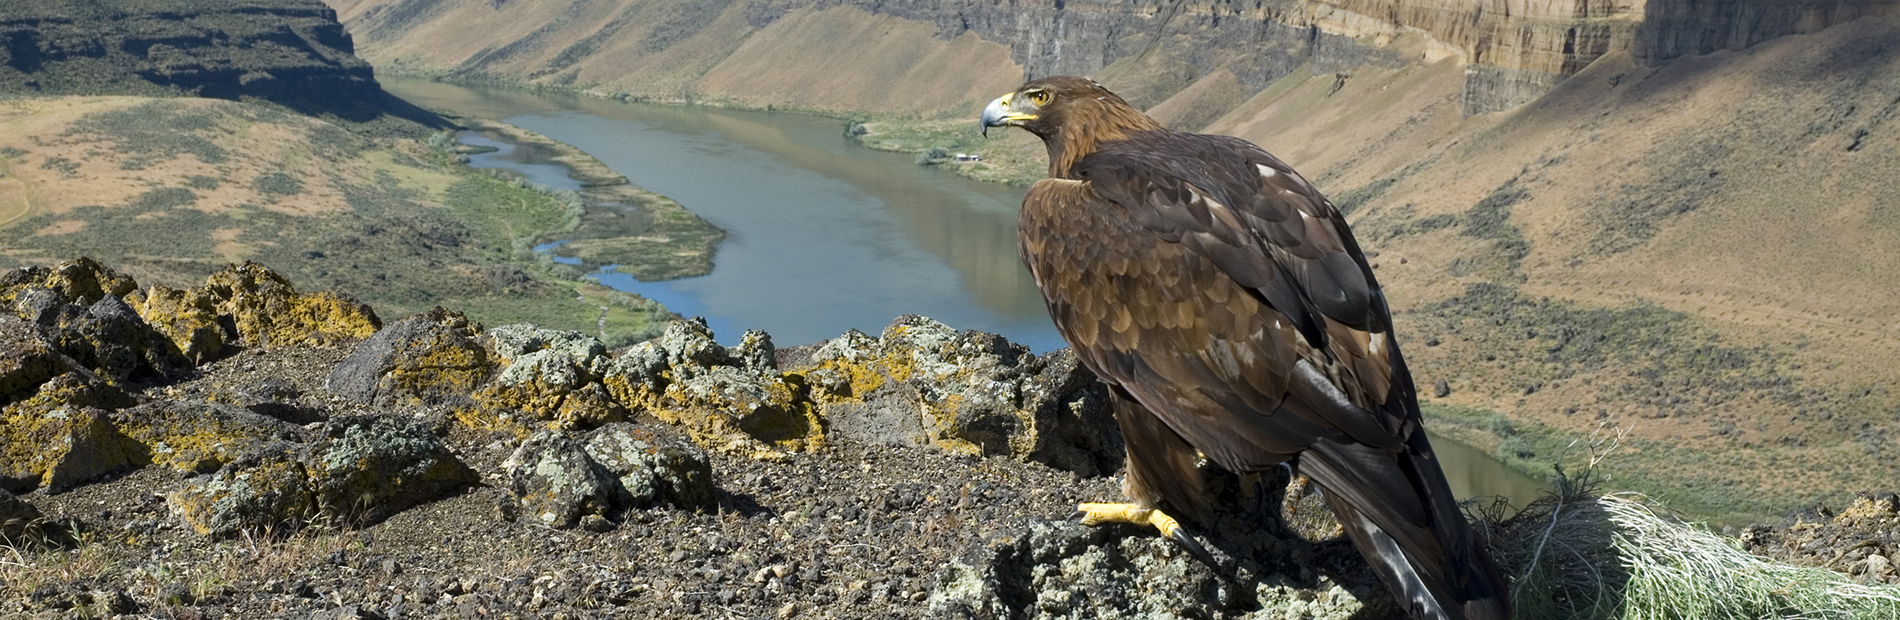 Golden Eagle Perched On Cliff